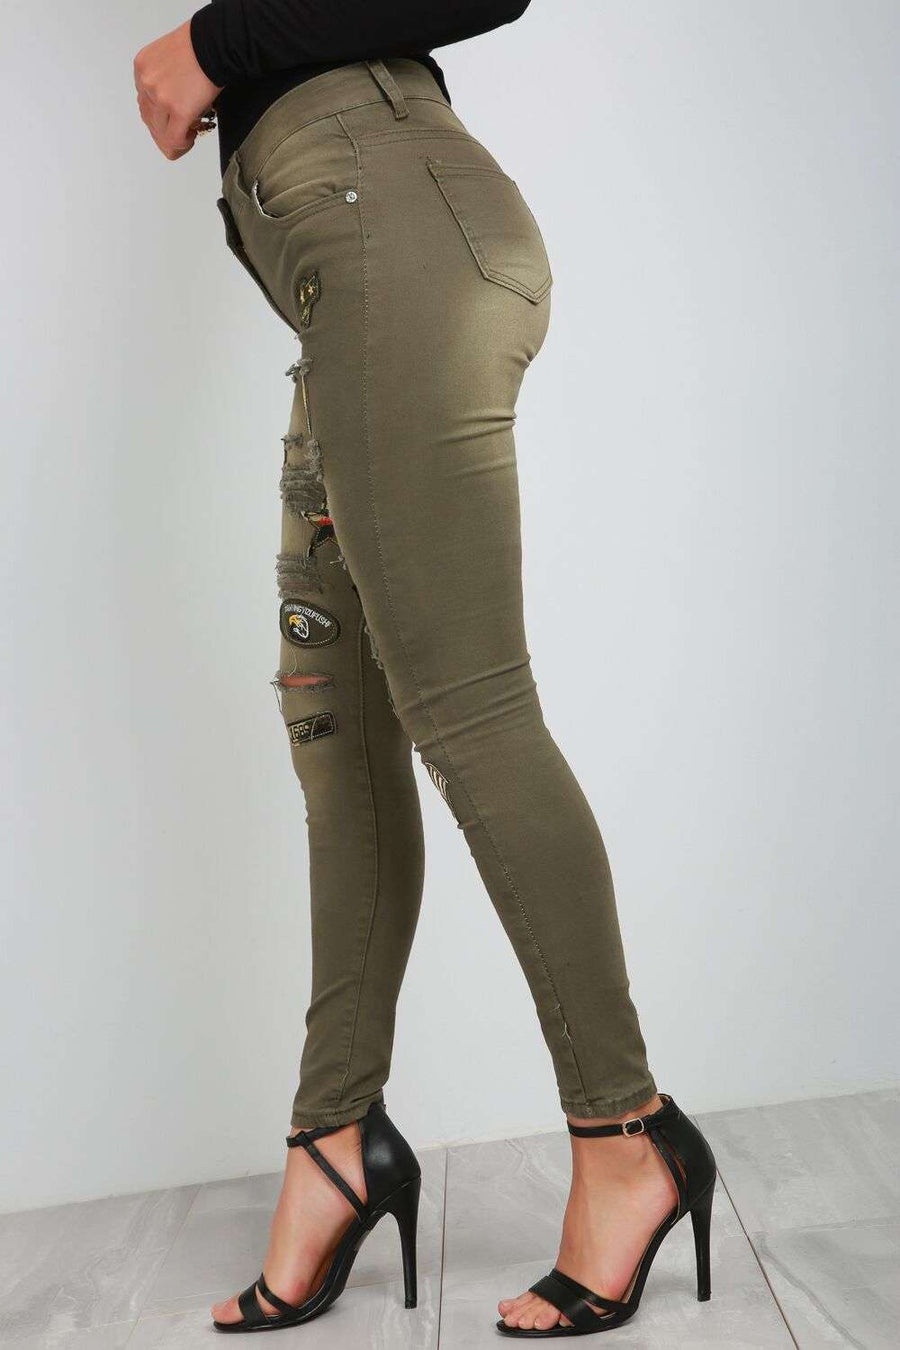 Orla Badge Military Green Skinny Denim Jeans - bejealous-com